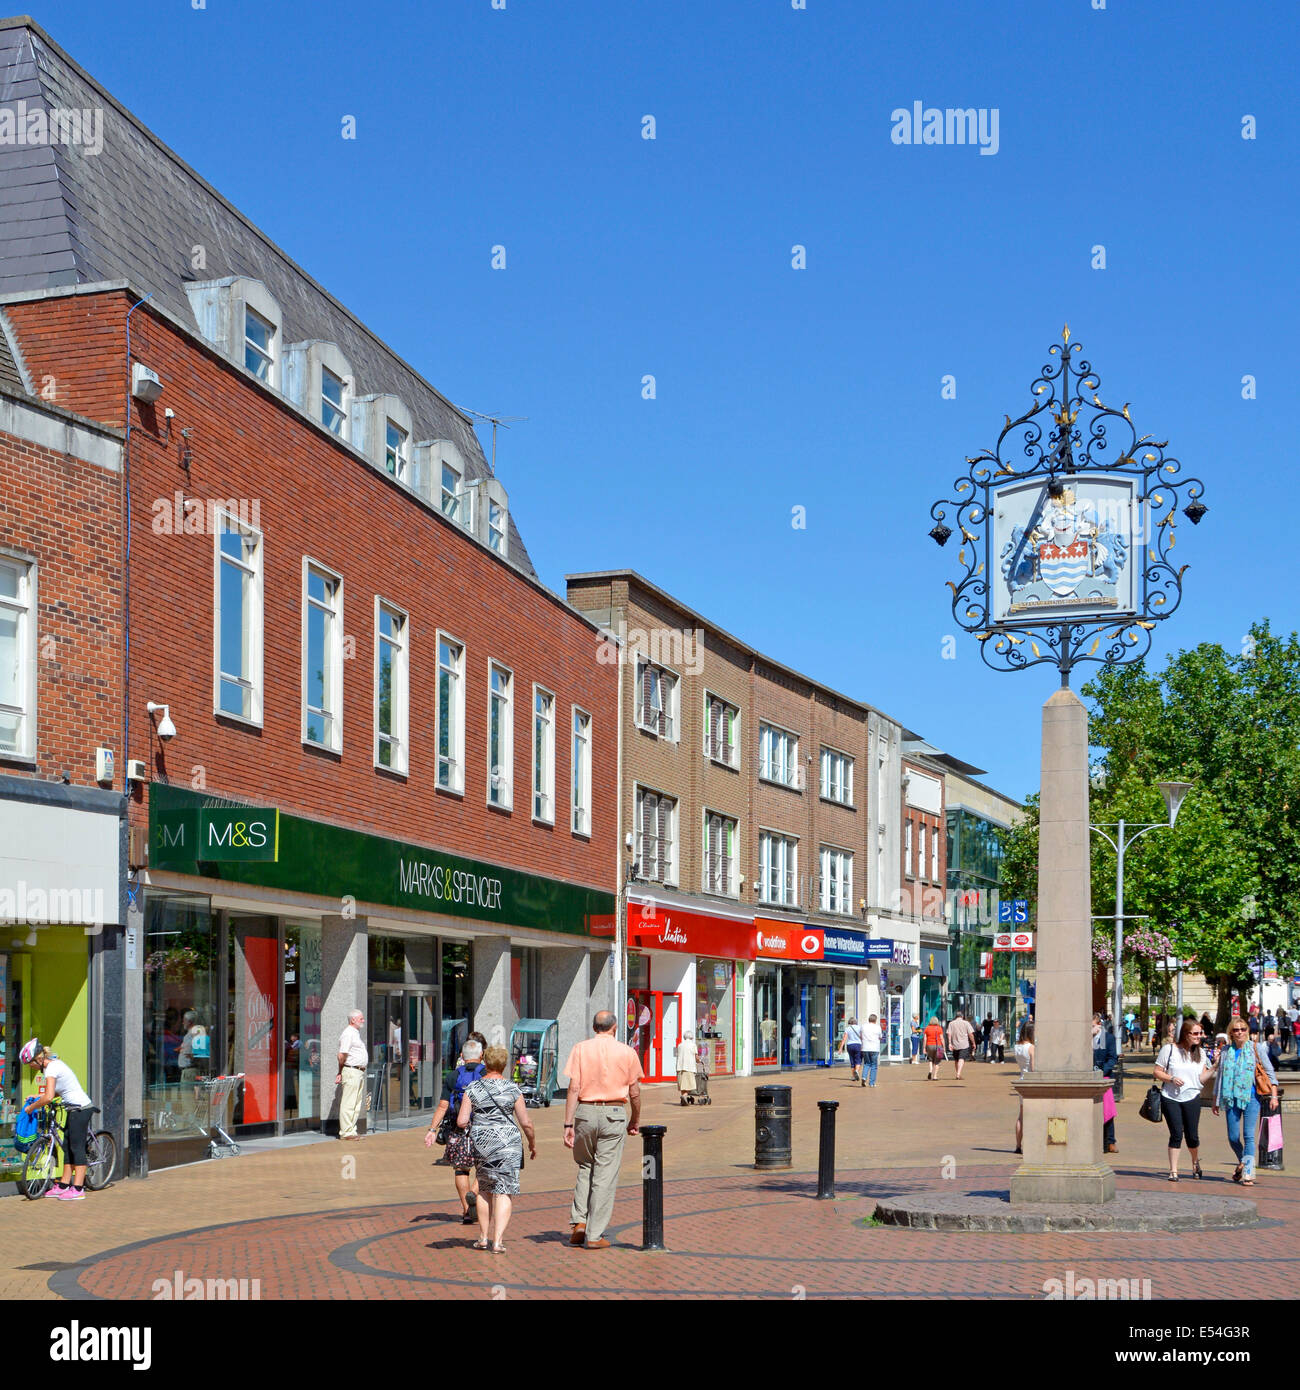 Chelmsford (county town of Essex) city centre pedestrianised shopping high street with coat of arms - Stock Image